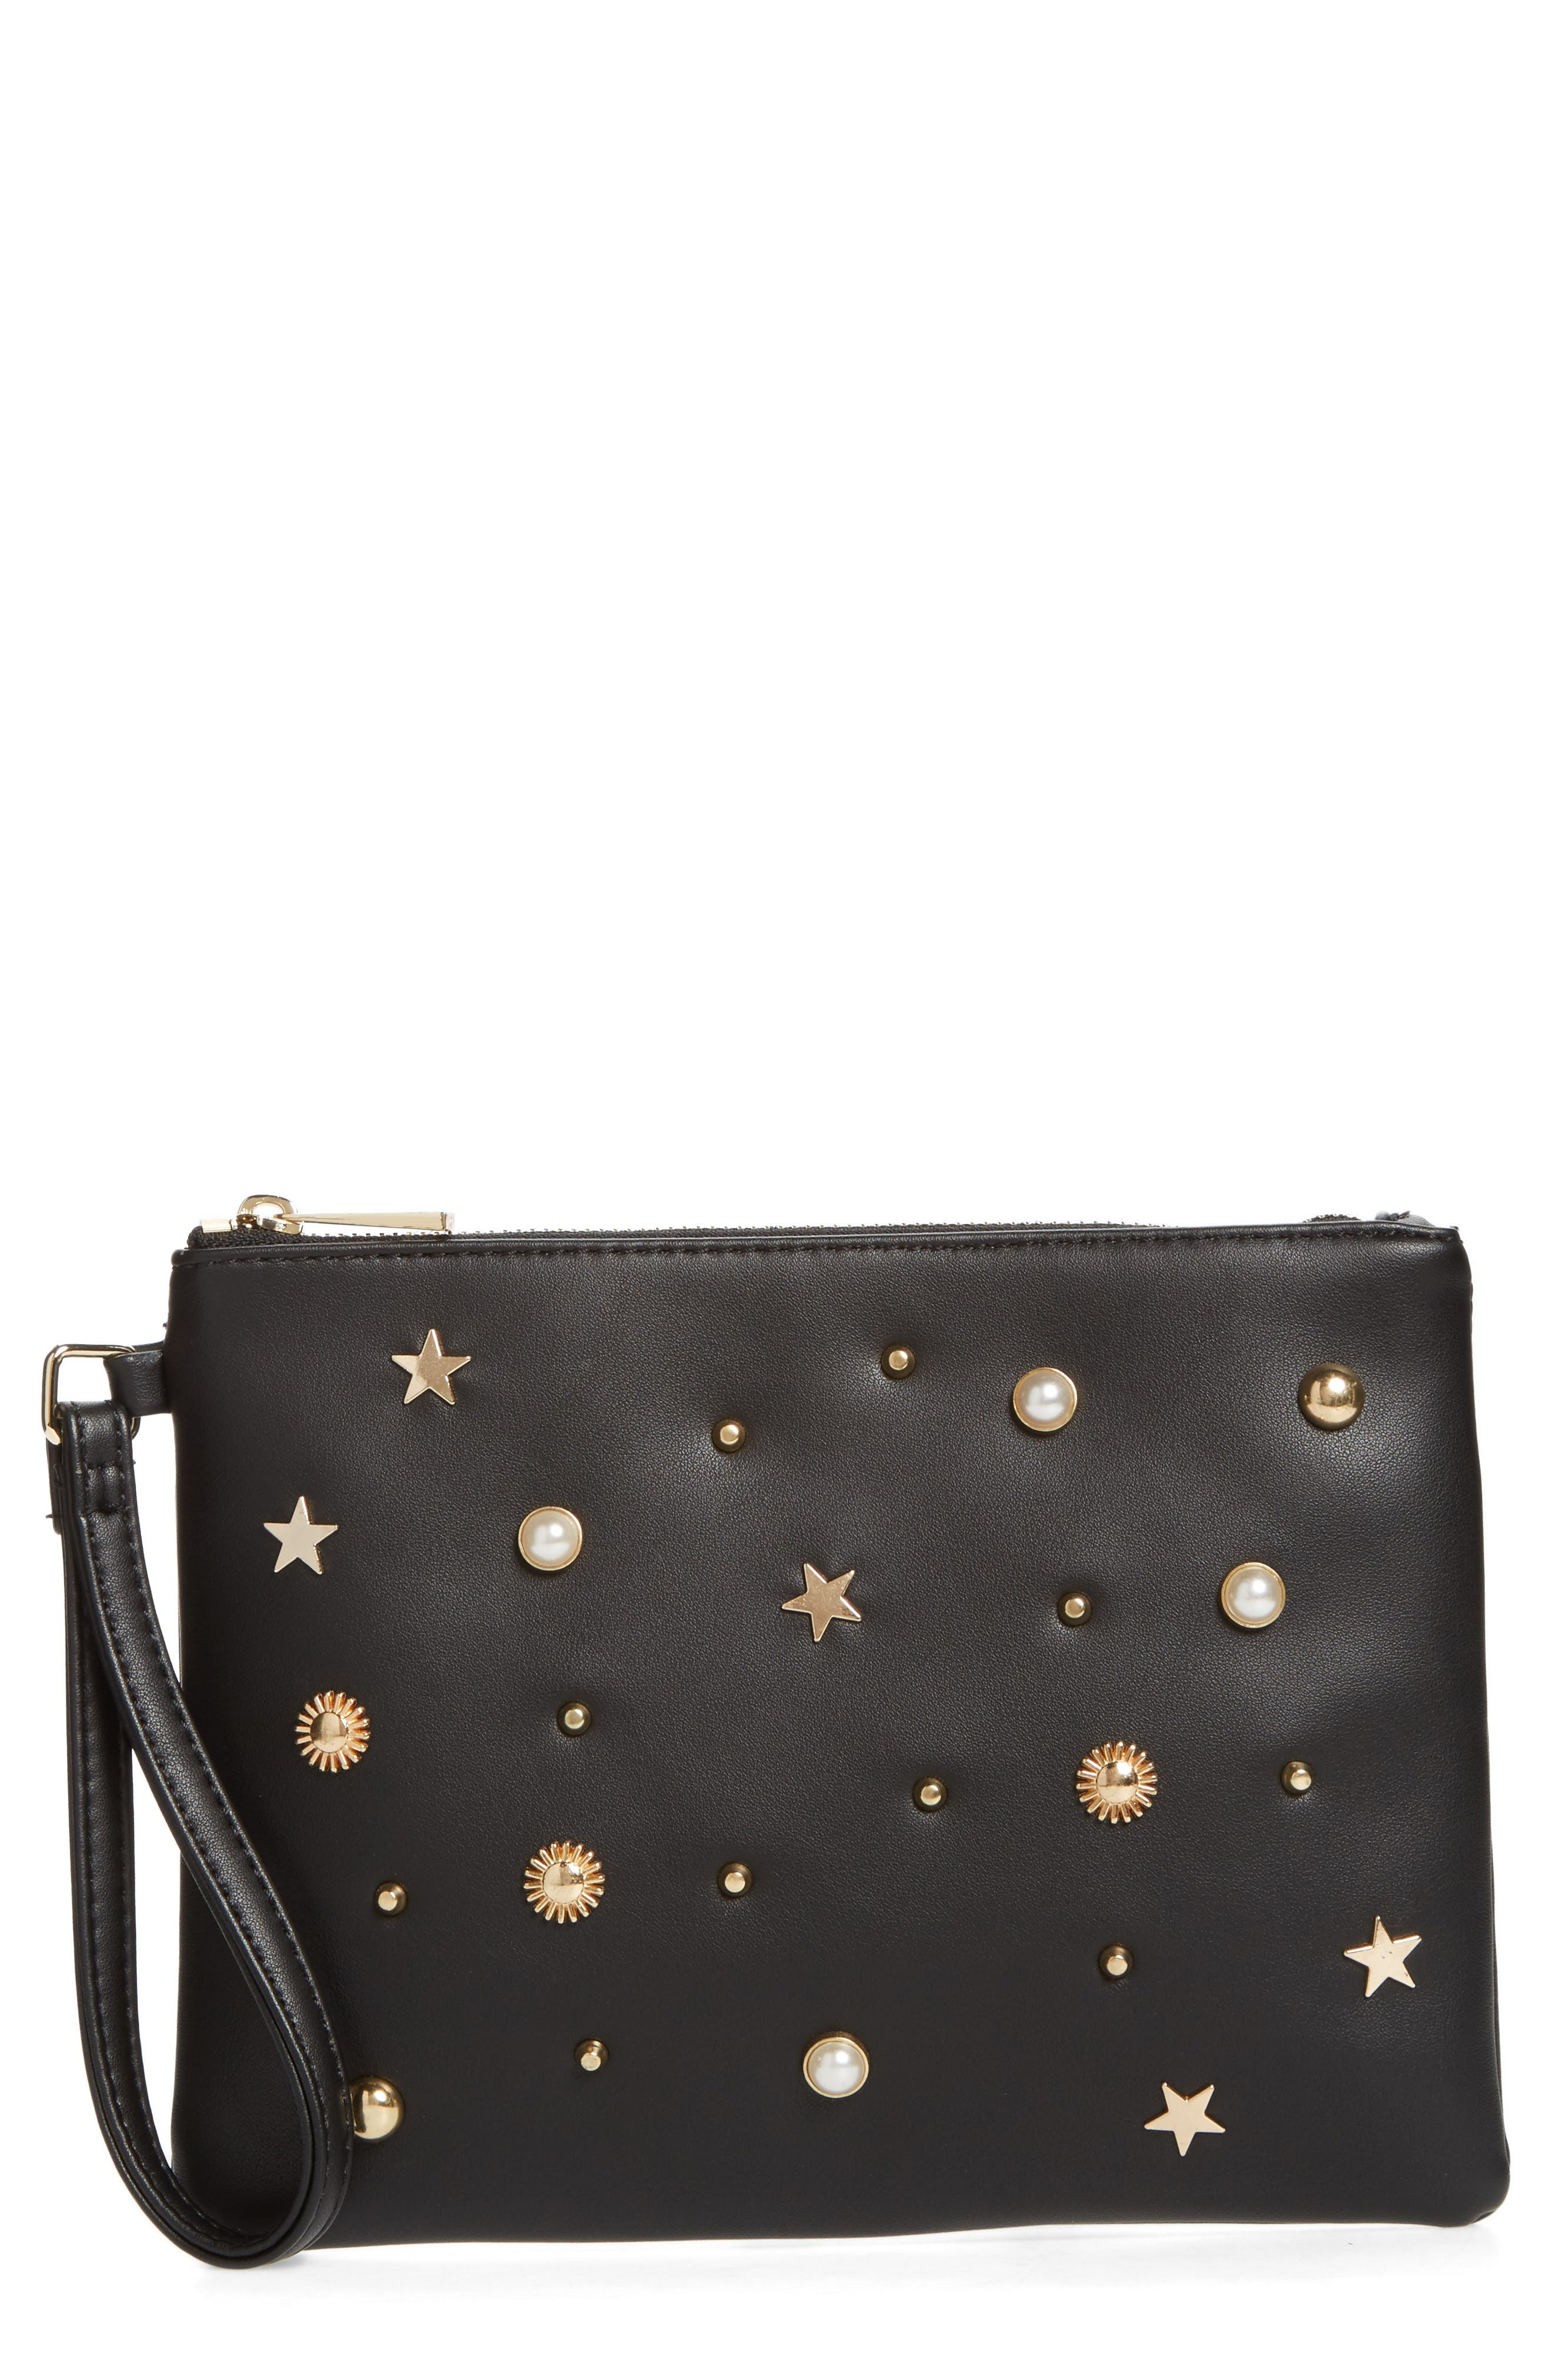 Street Leel Star Stud Faux Leather Clutch,                             Main thumbnail 1, color,                             001